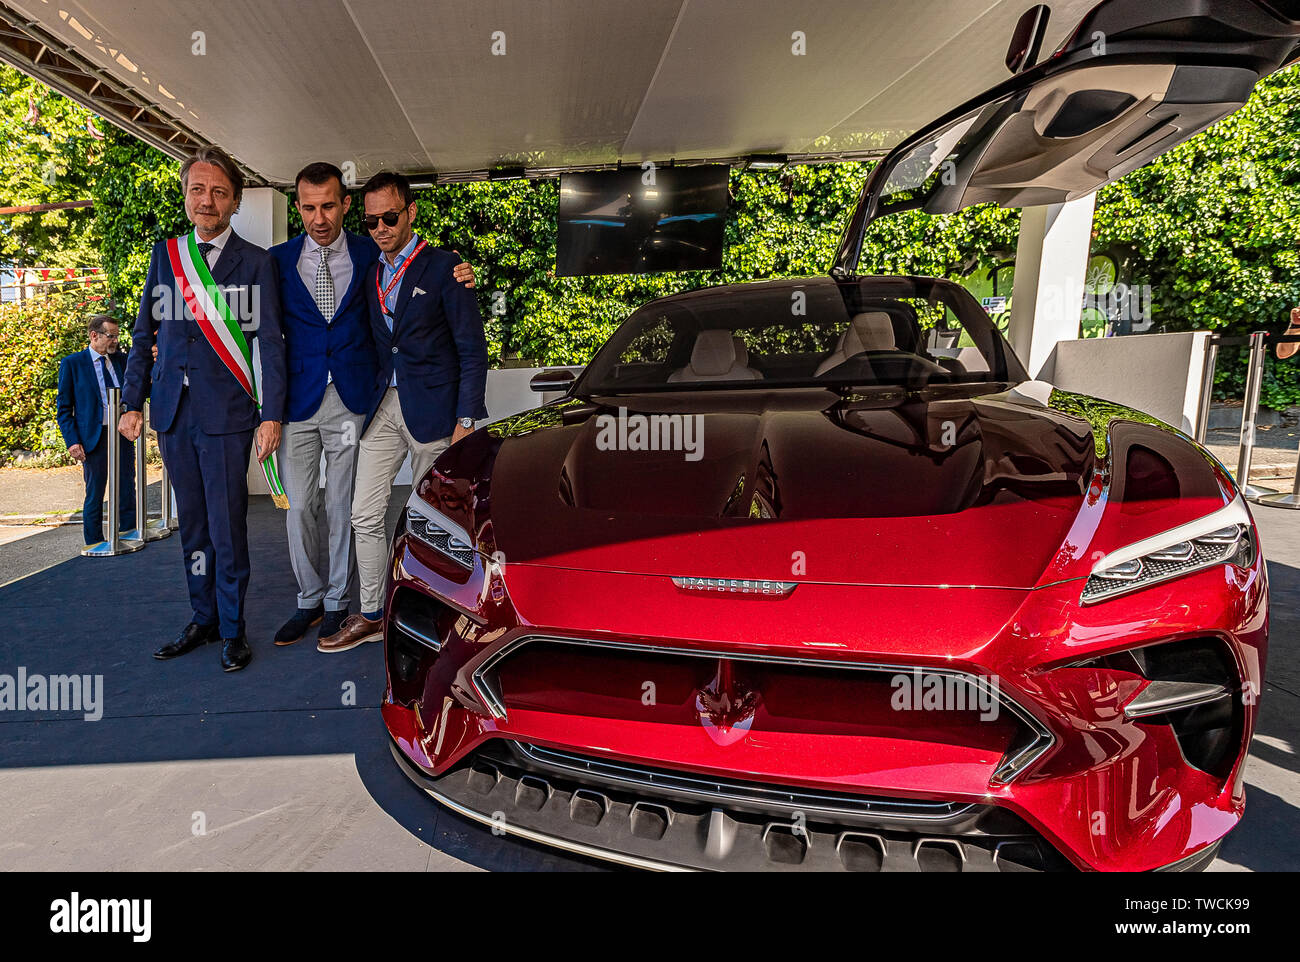 Piedmont Turin - Turin auto show 2019  - Valentino park - personalities visit the stands Stock Photo